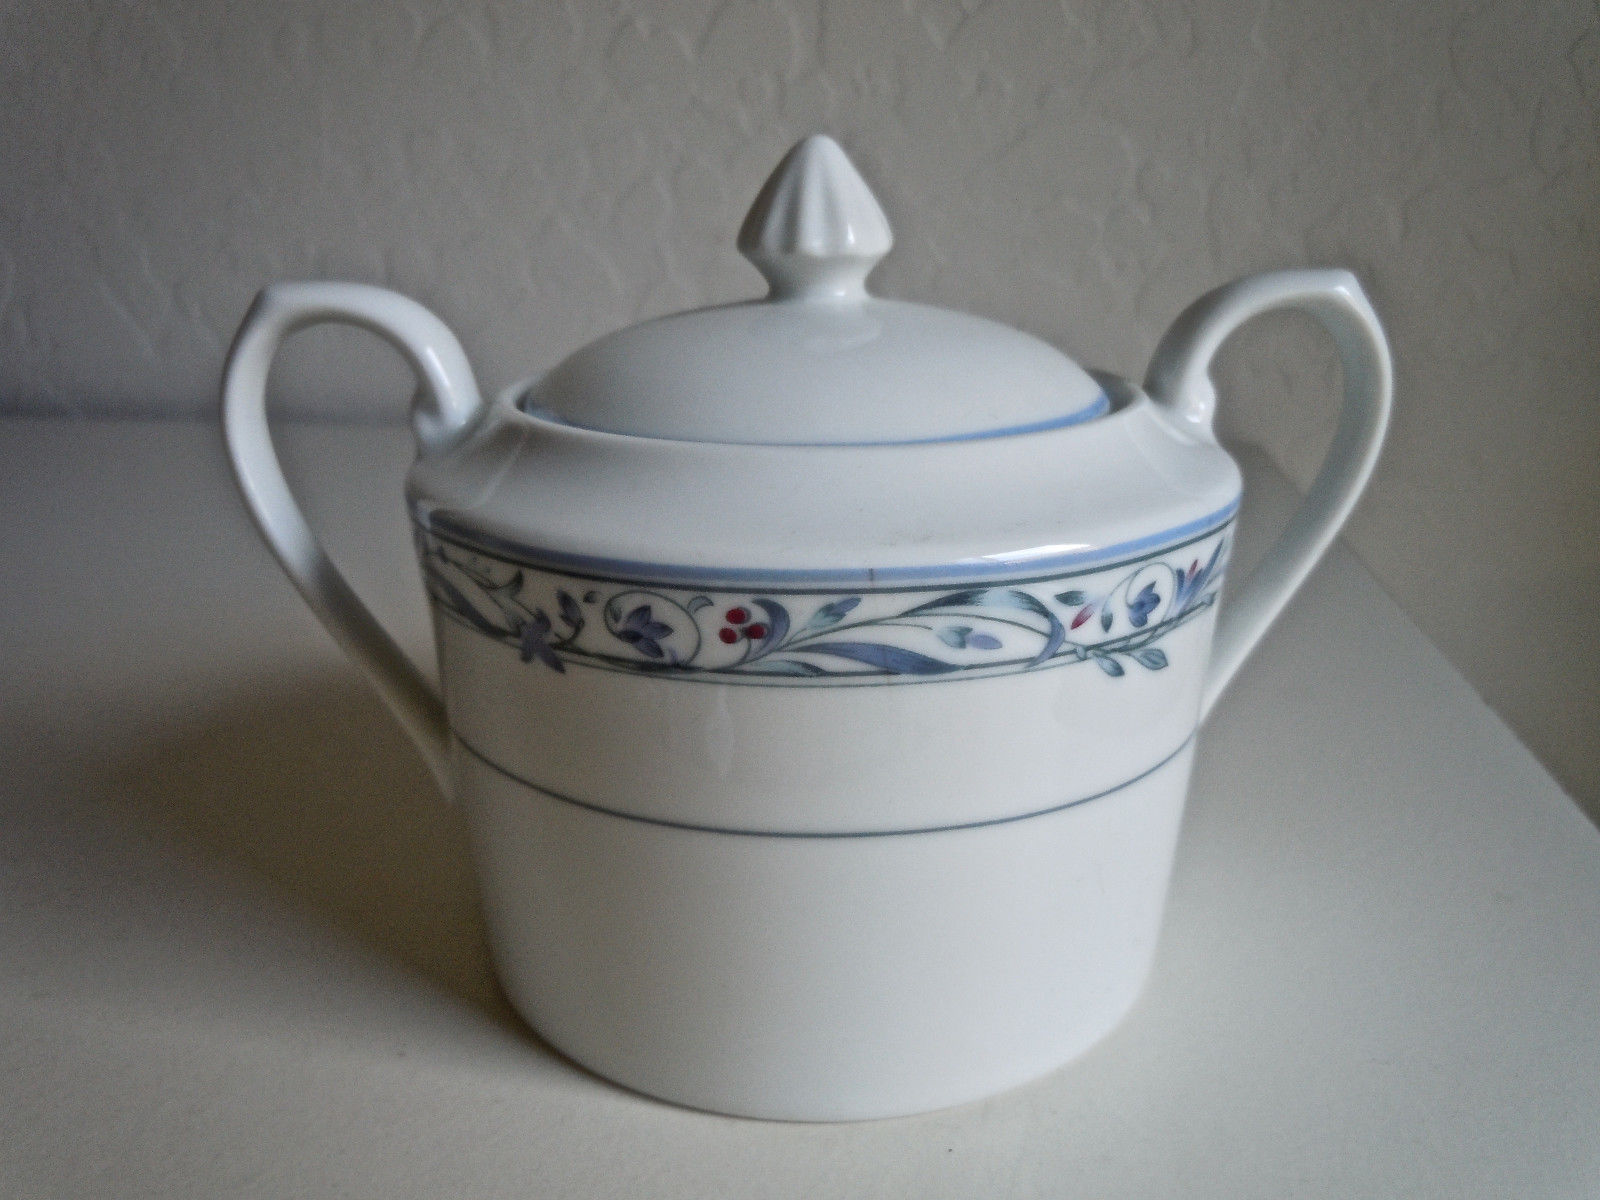 Christopher Stuart Overture Sugar Bowl and Lid